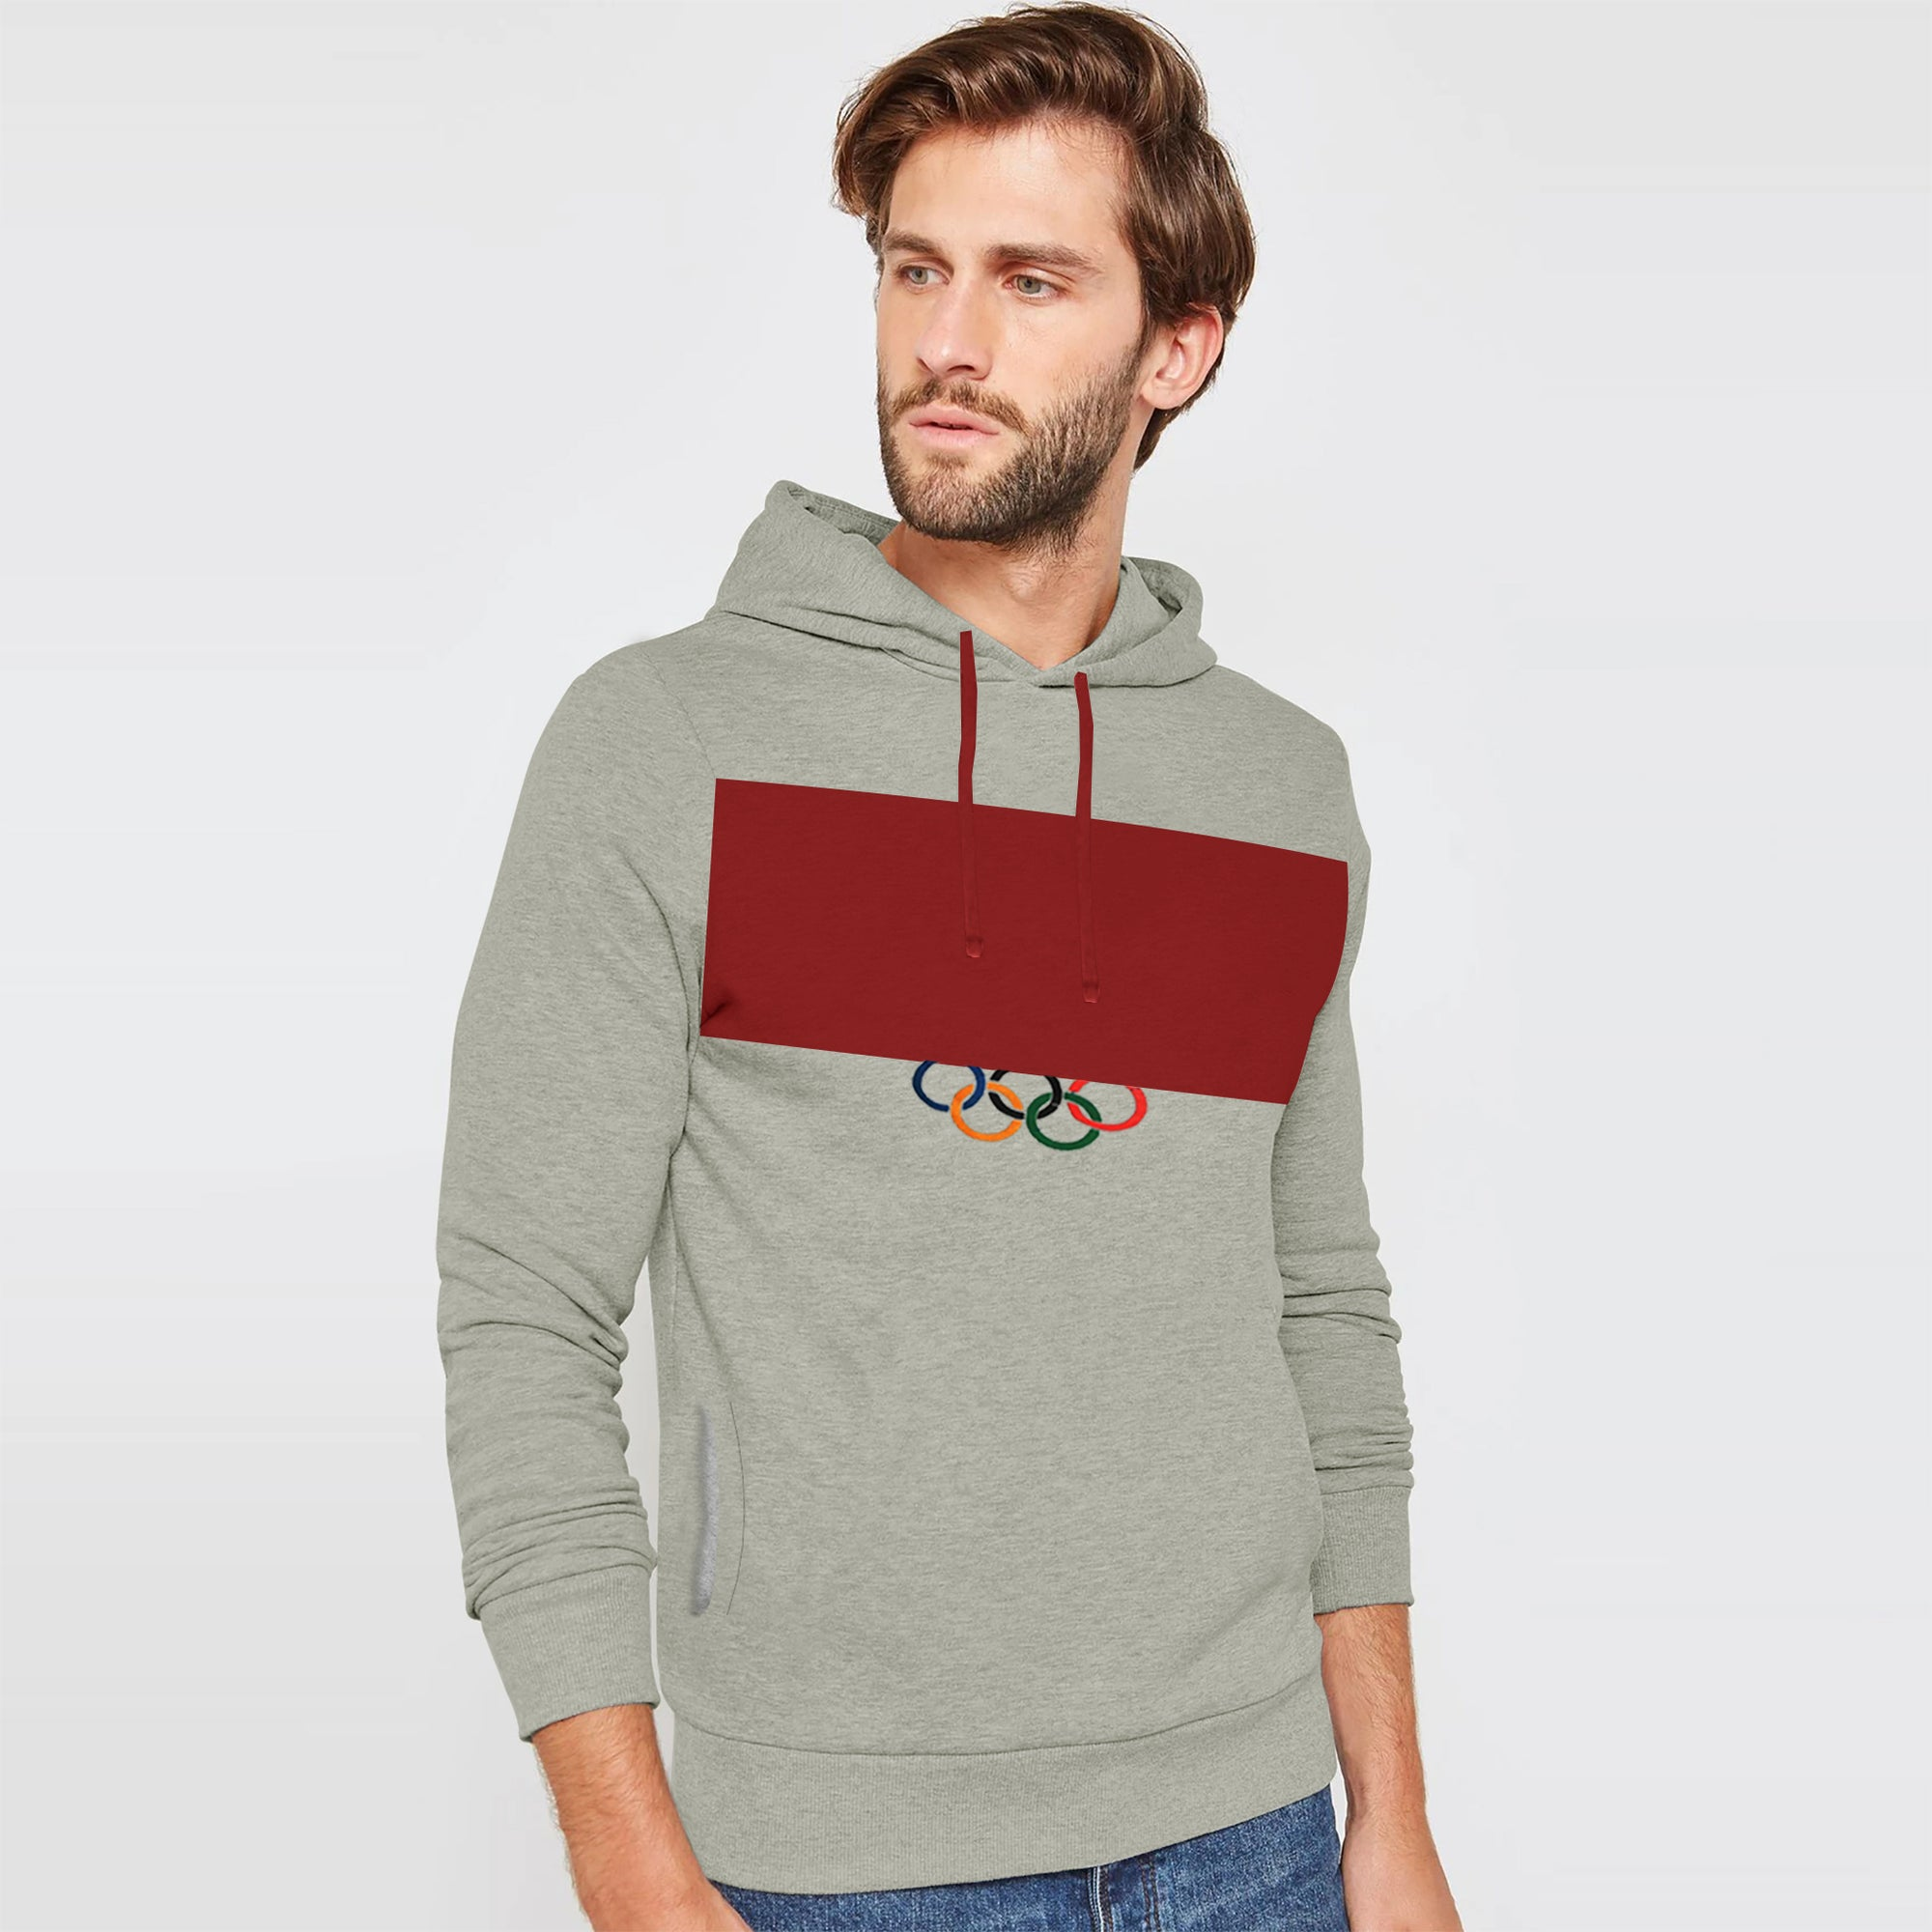 New Stylish Fleece Pullover Hoodie For Men-Grey Melange With Carrot Red Panel-SP1685